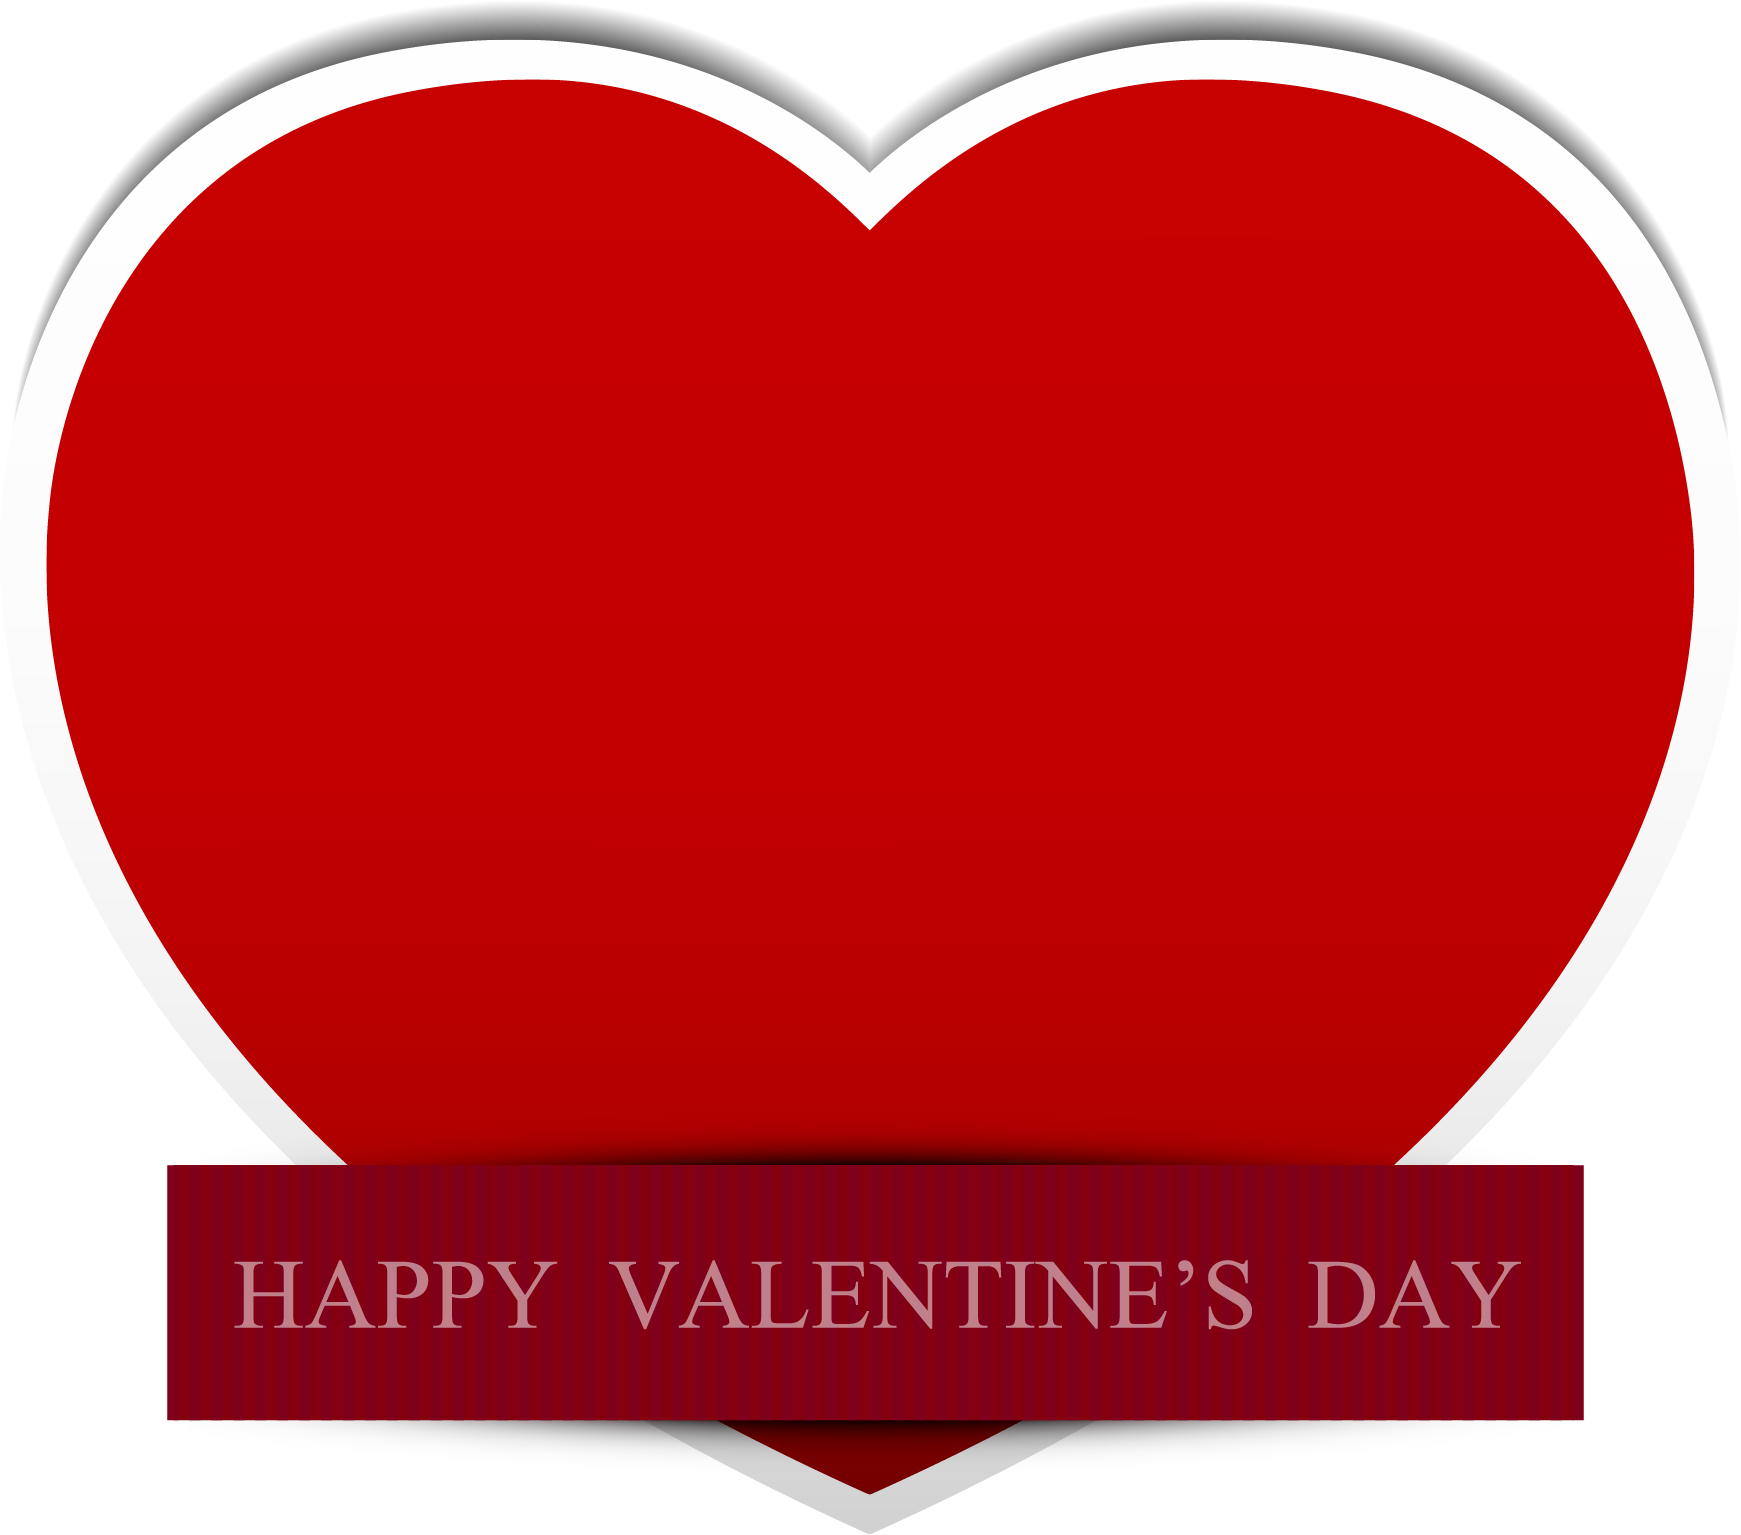 Red Valentines Day Heart Clip art.